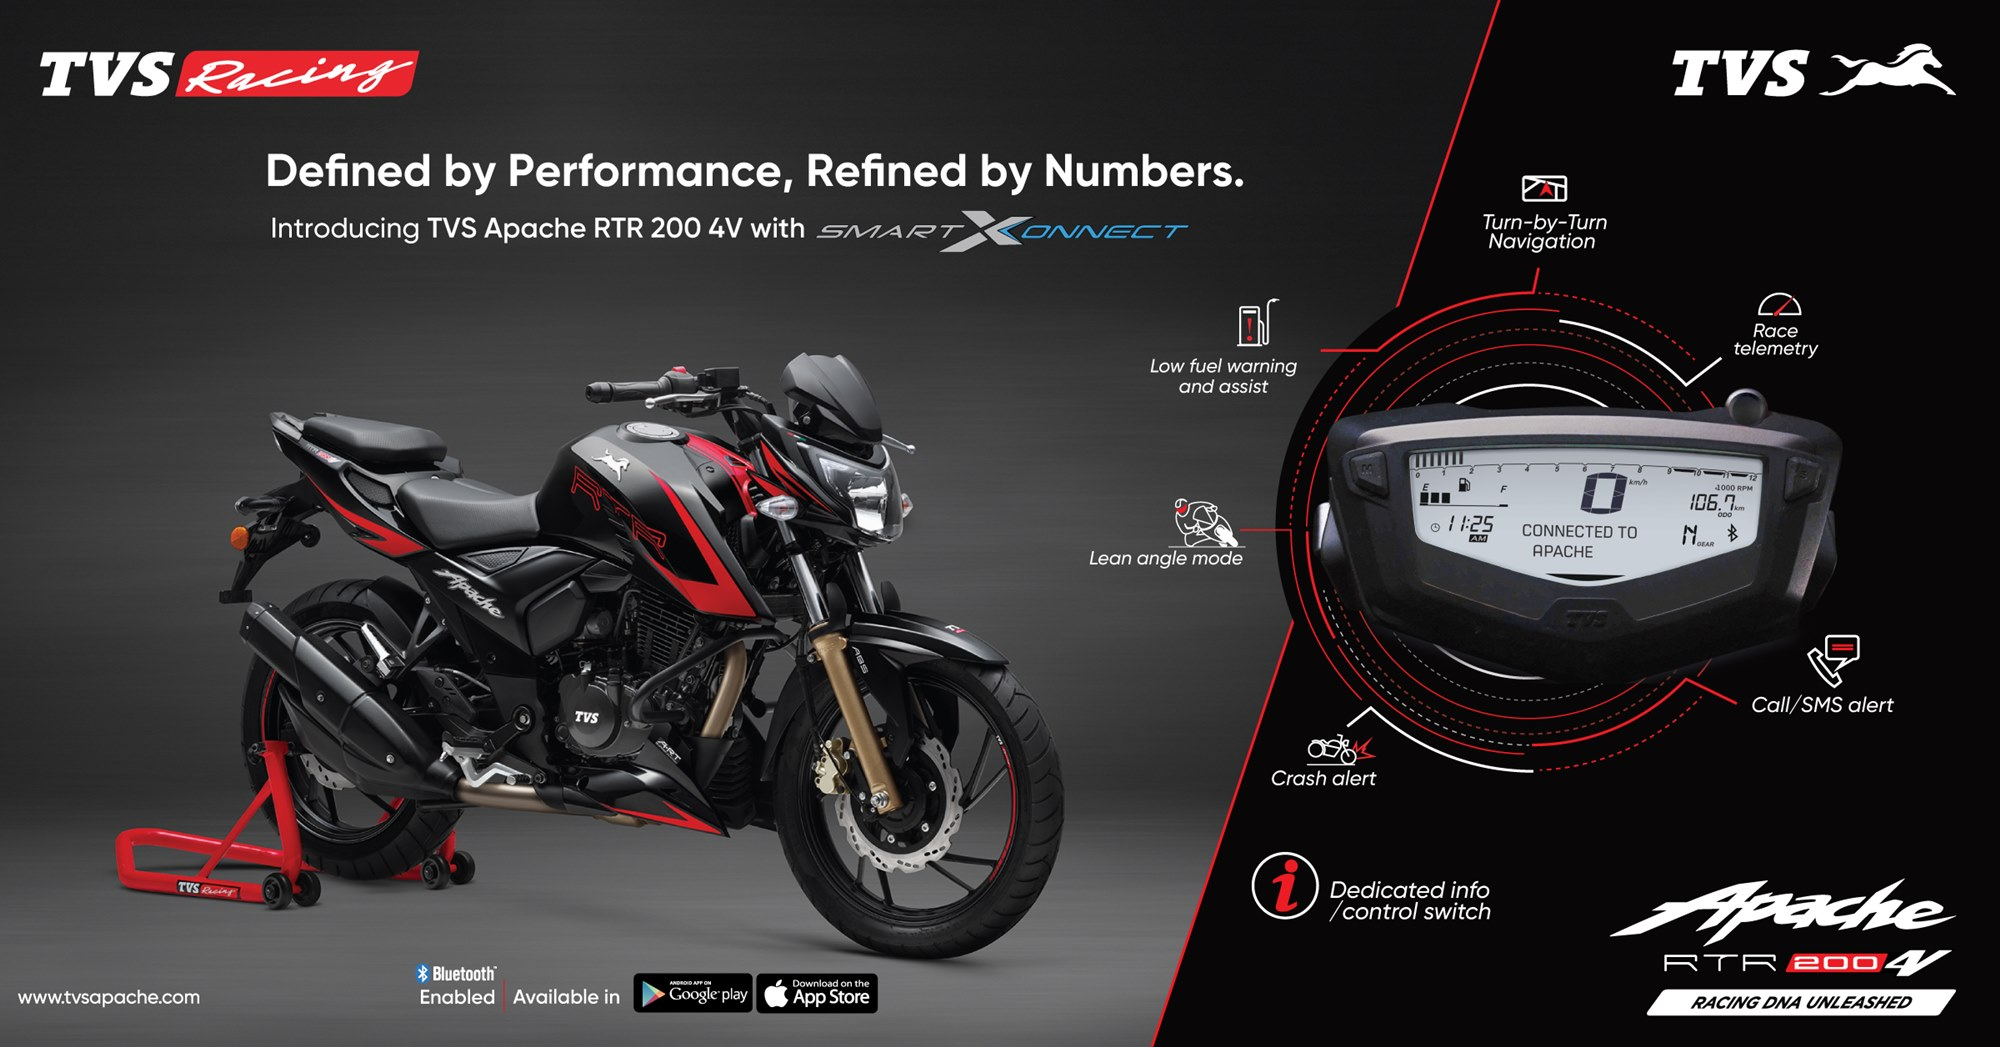 Apache RTR 200 4V with TVS SmartXonnect technology